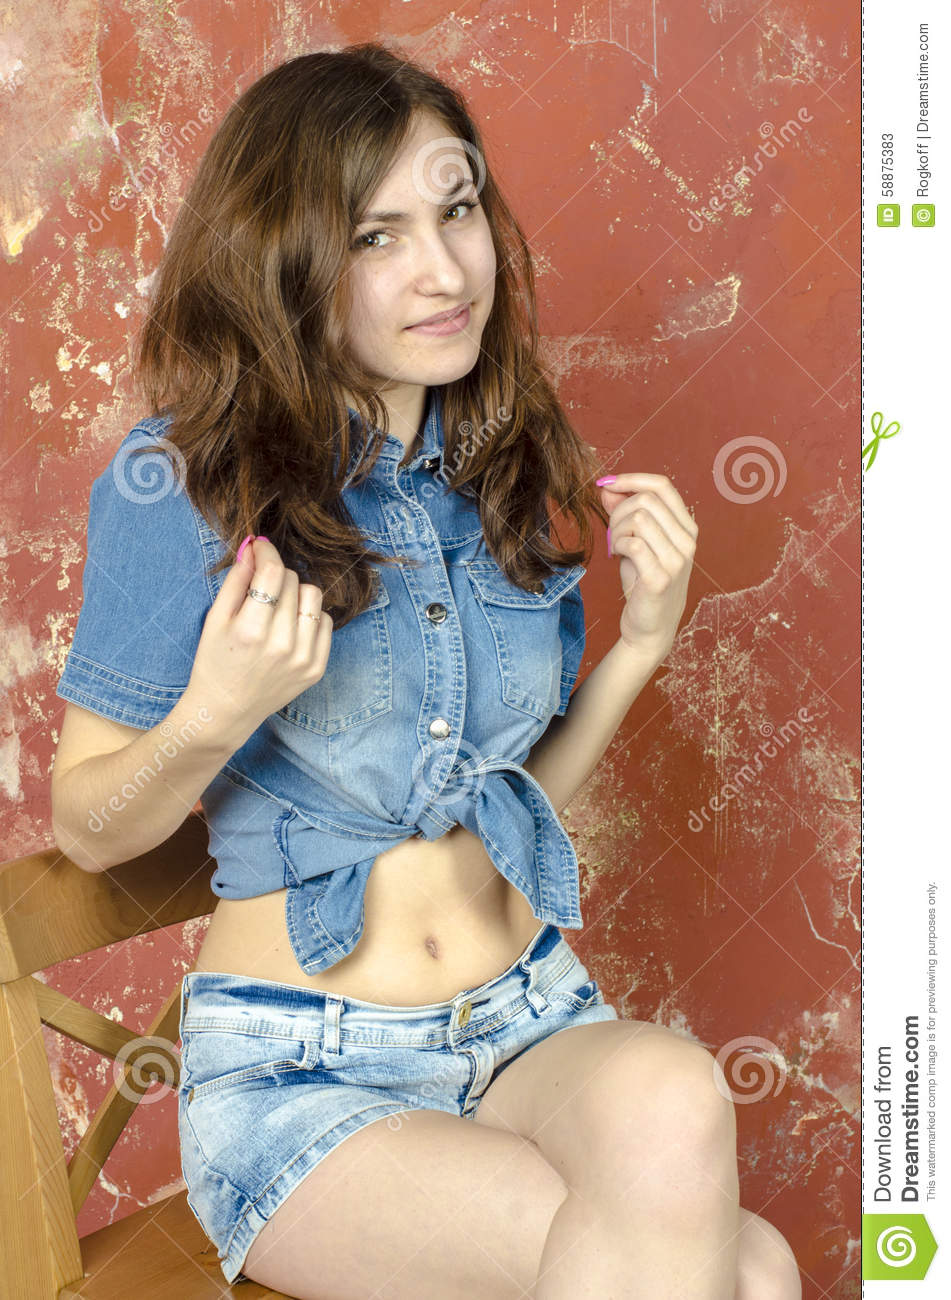 Cheerful Young Teen Girl In Denim Shorts Stock Photo - Image: 58875383